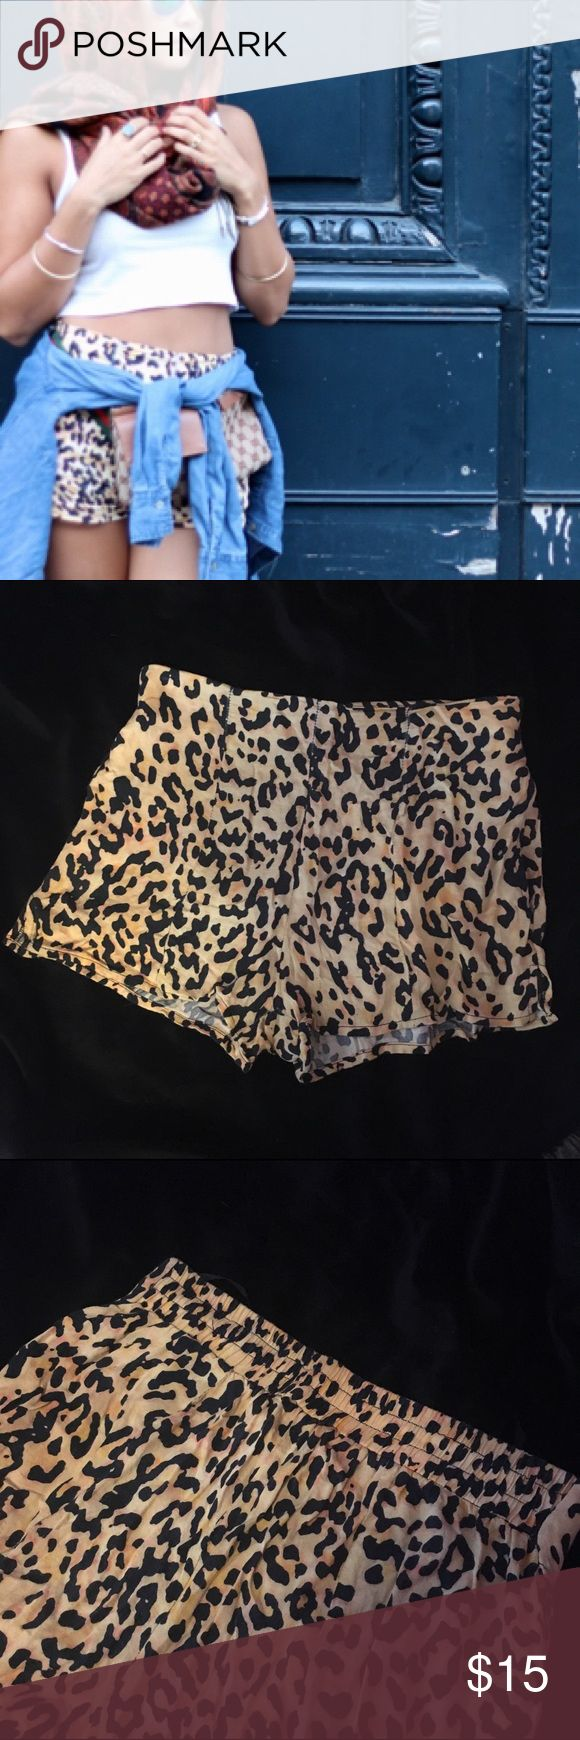 Leopard print shorts Lightweight, and in excellent condition! Bought in Australia at a boutique store. Elastic around the back waist. Has pockets! evil twin Shorts